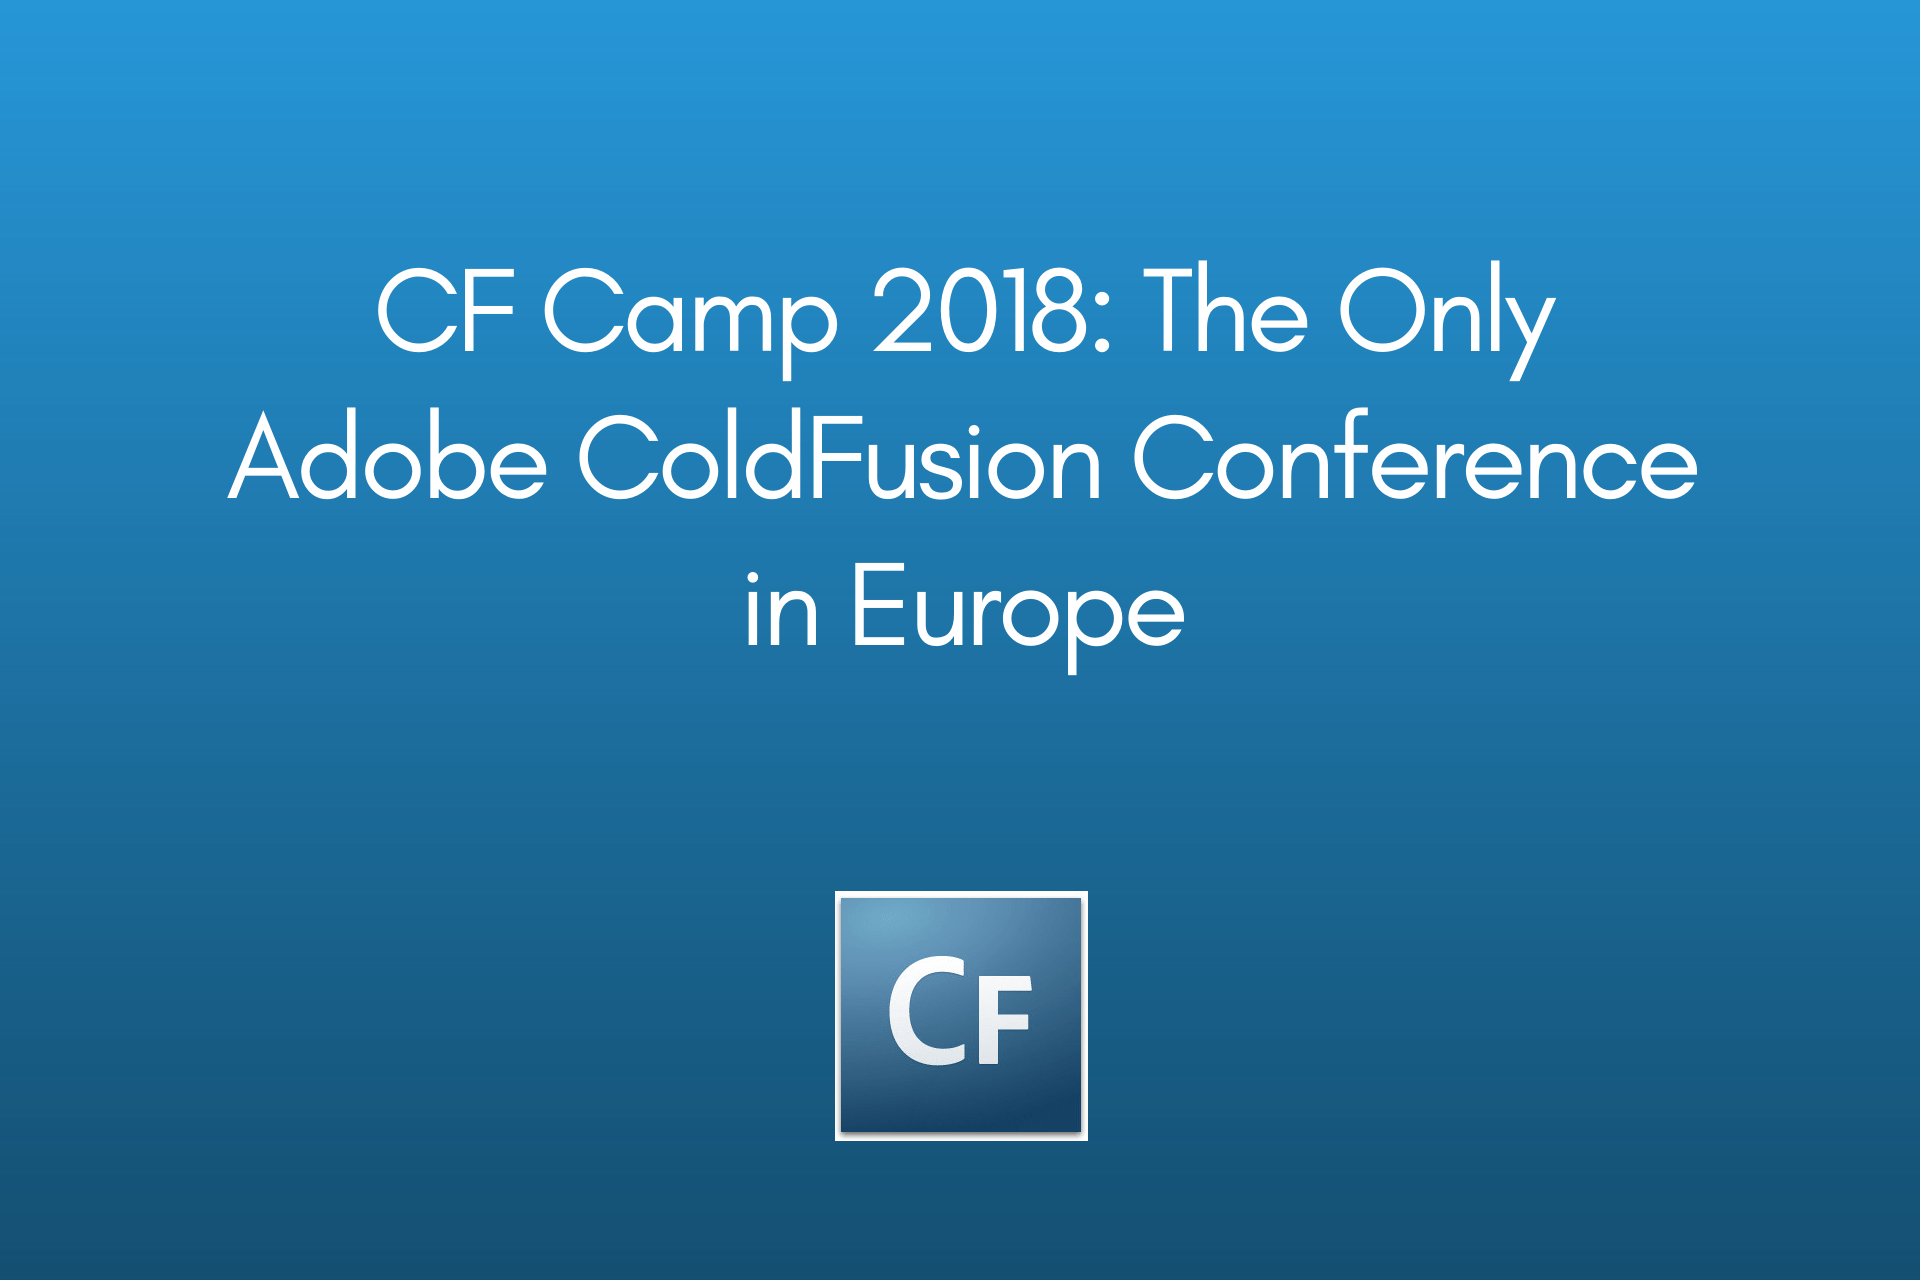 CF Camp 2018: The Only Adobe ColdFusion Conference in Europe